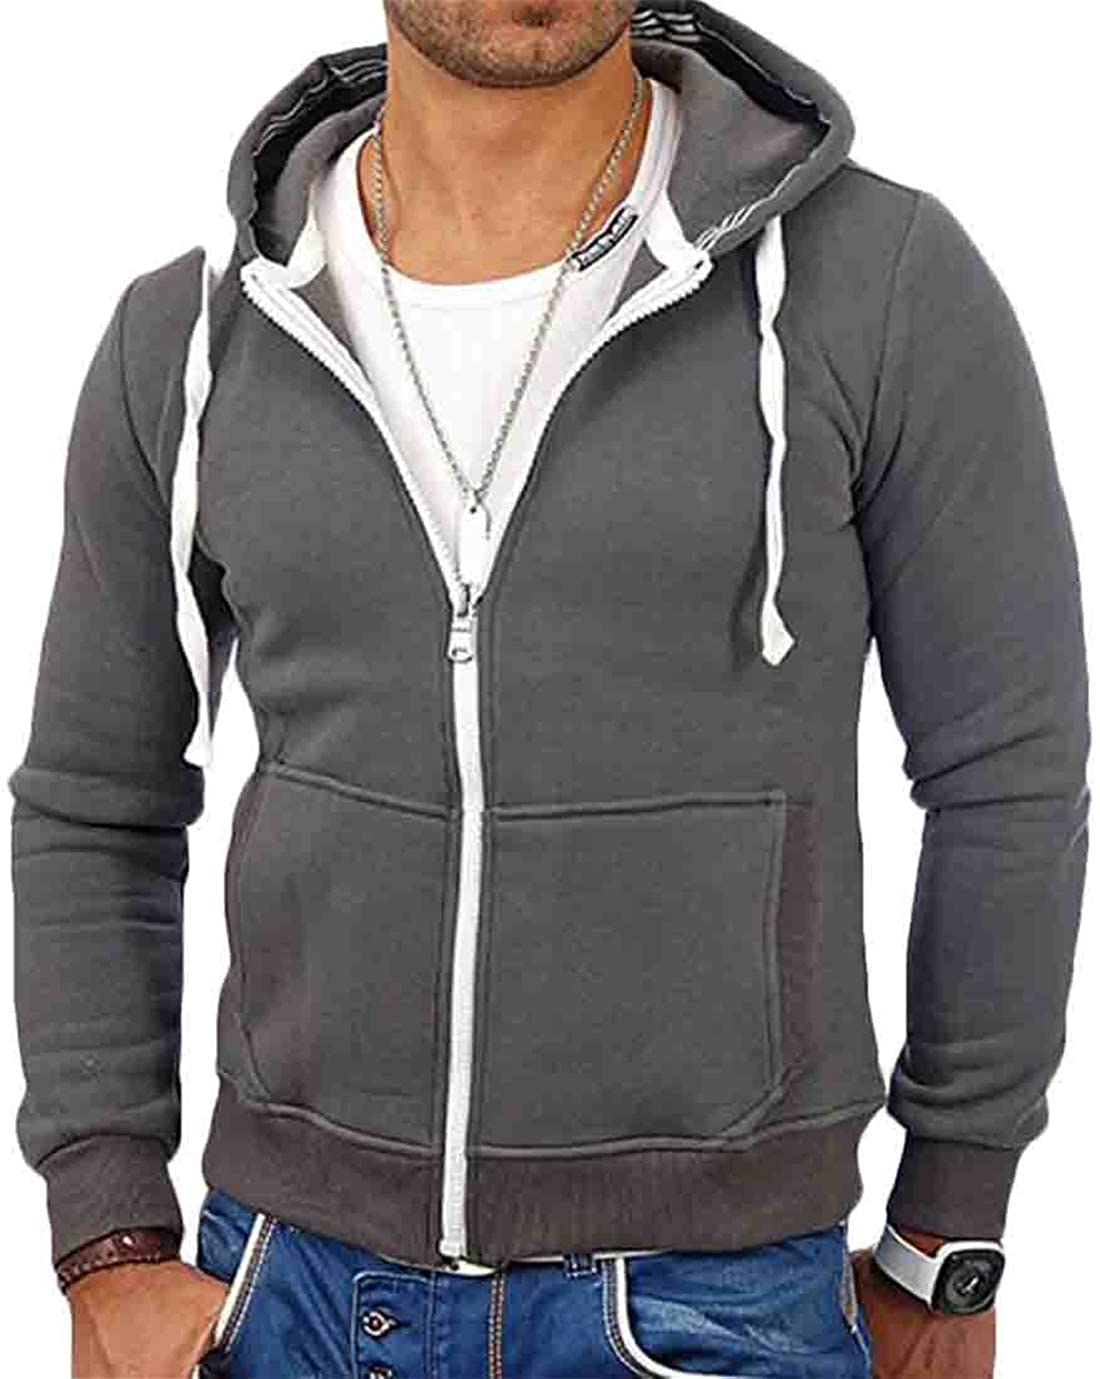 Hurrg Men Hooded Autumn Pocket Drawstring Solid Patchwork Jackets Sweatshirt